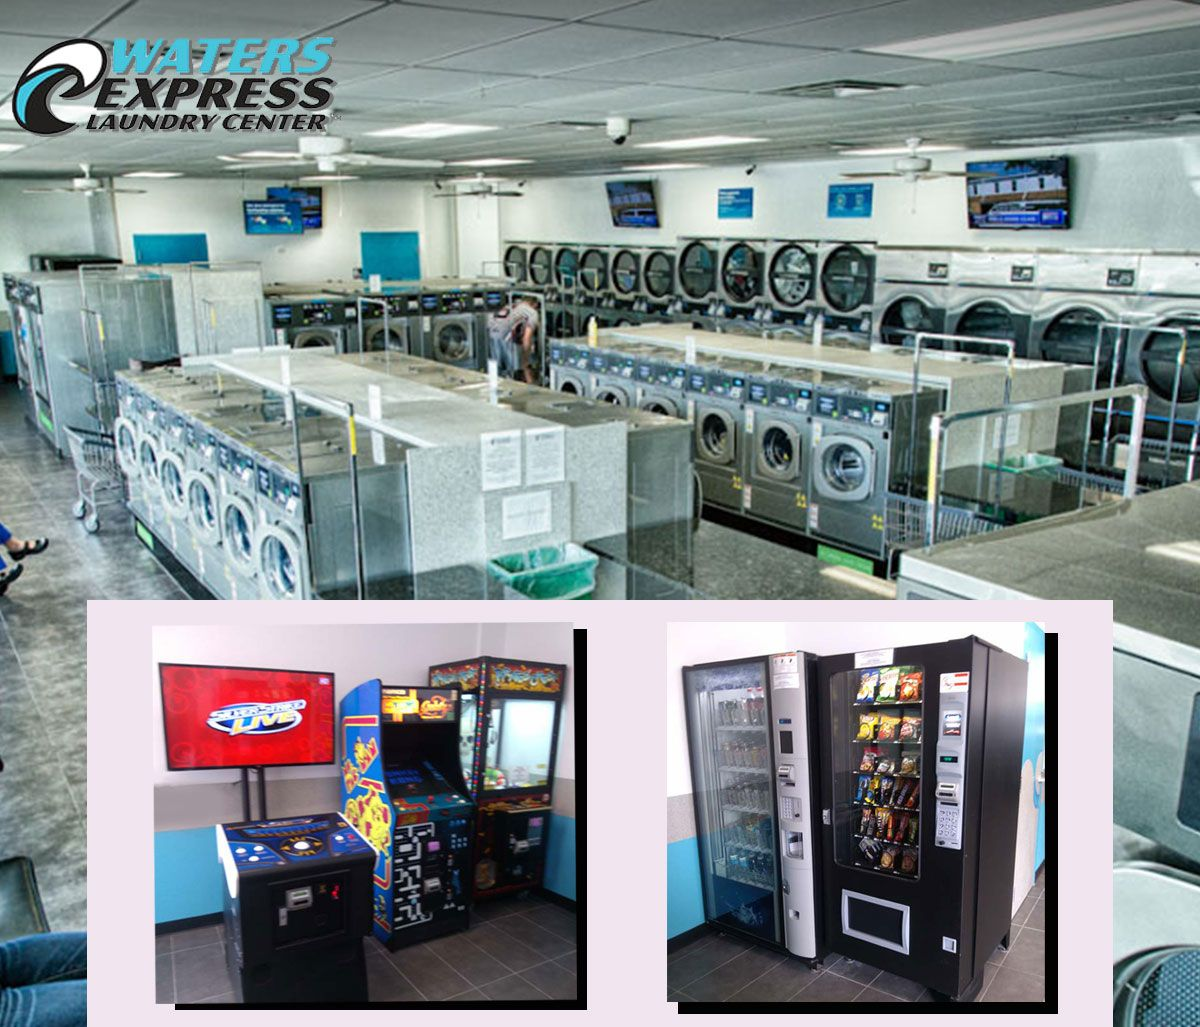 Waters Express Laundry Is Unique Because We Make The Dreaded Tasks